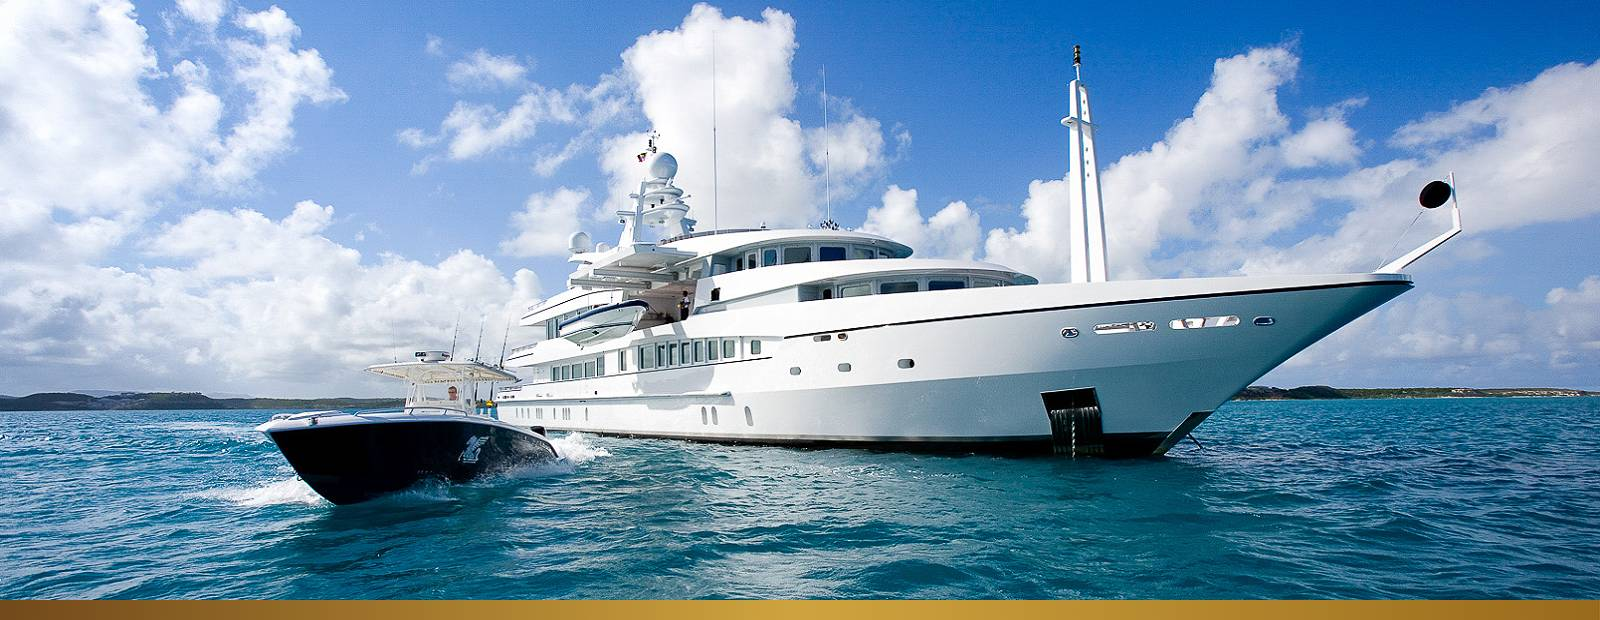 Mega Yachts Charter in Greece - Super Yachts Charter in Monaco - HELLAS YACHTING